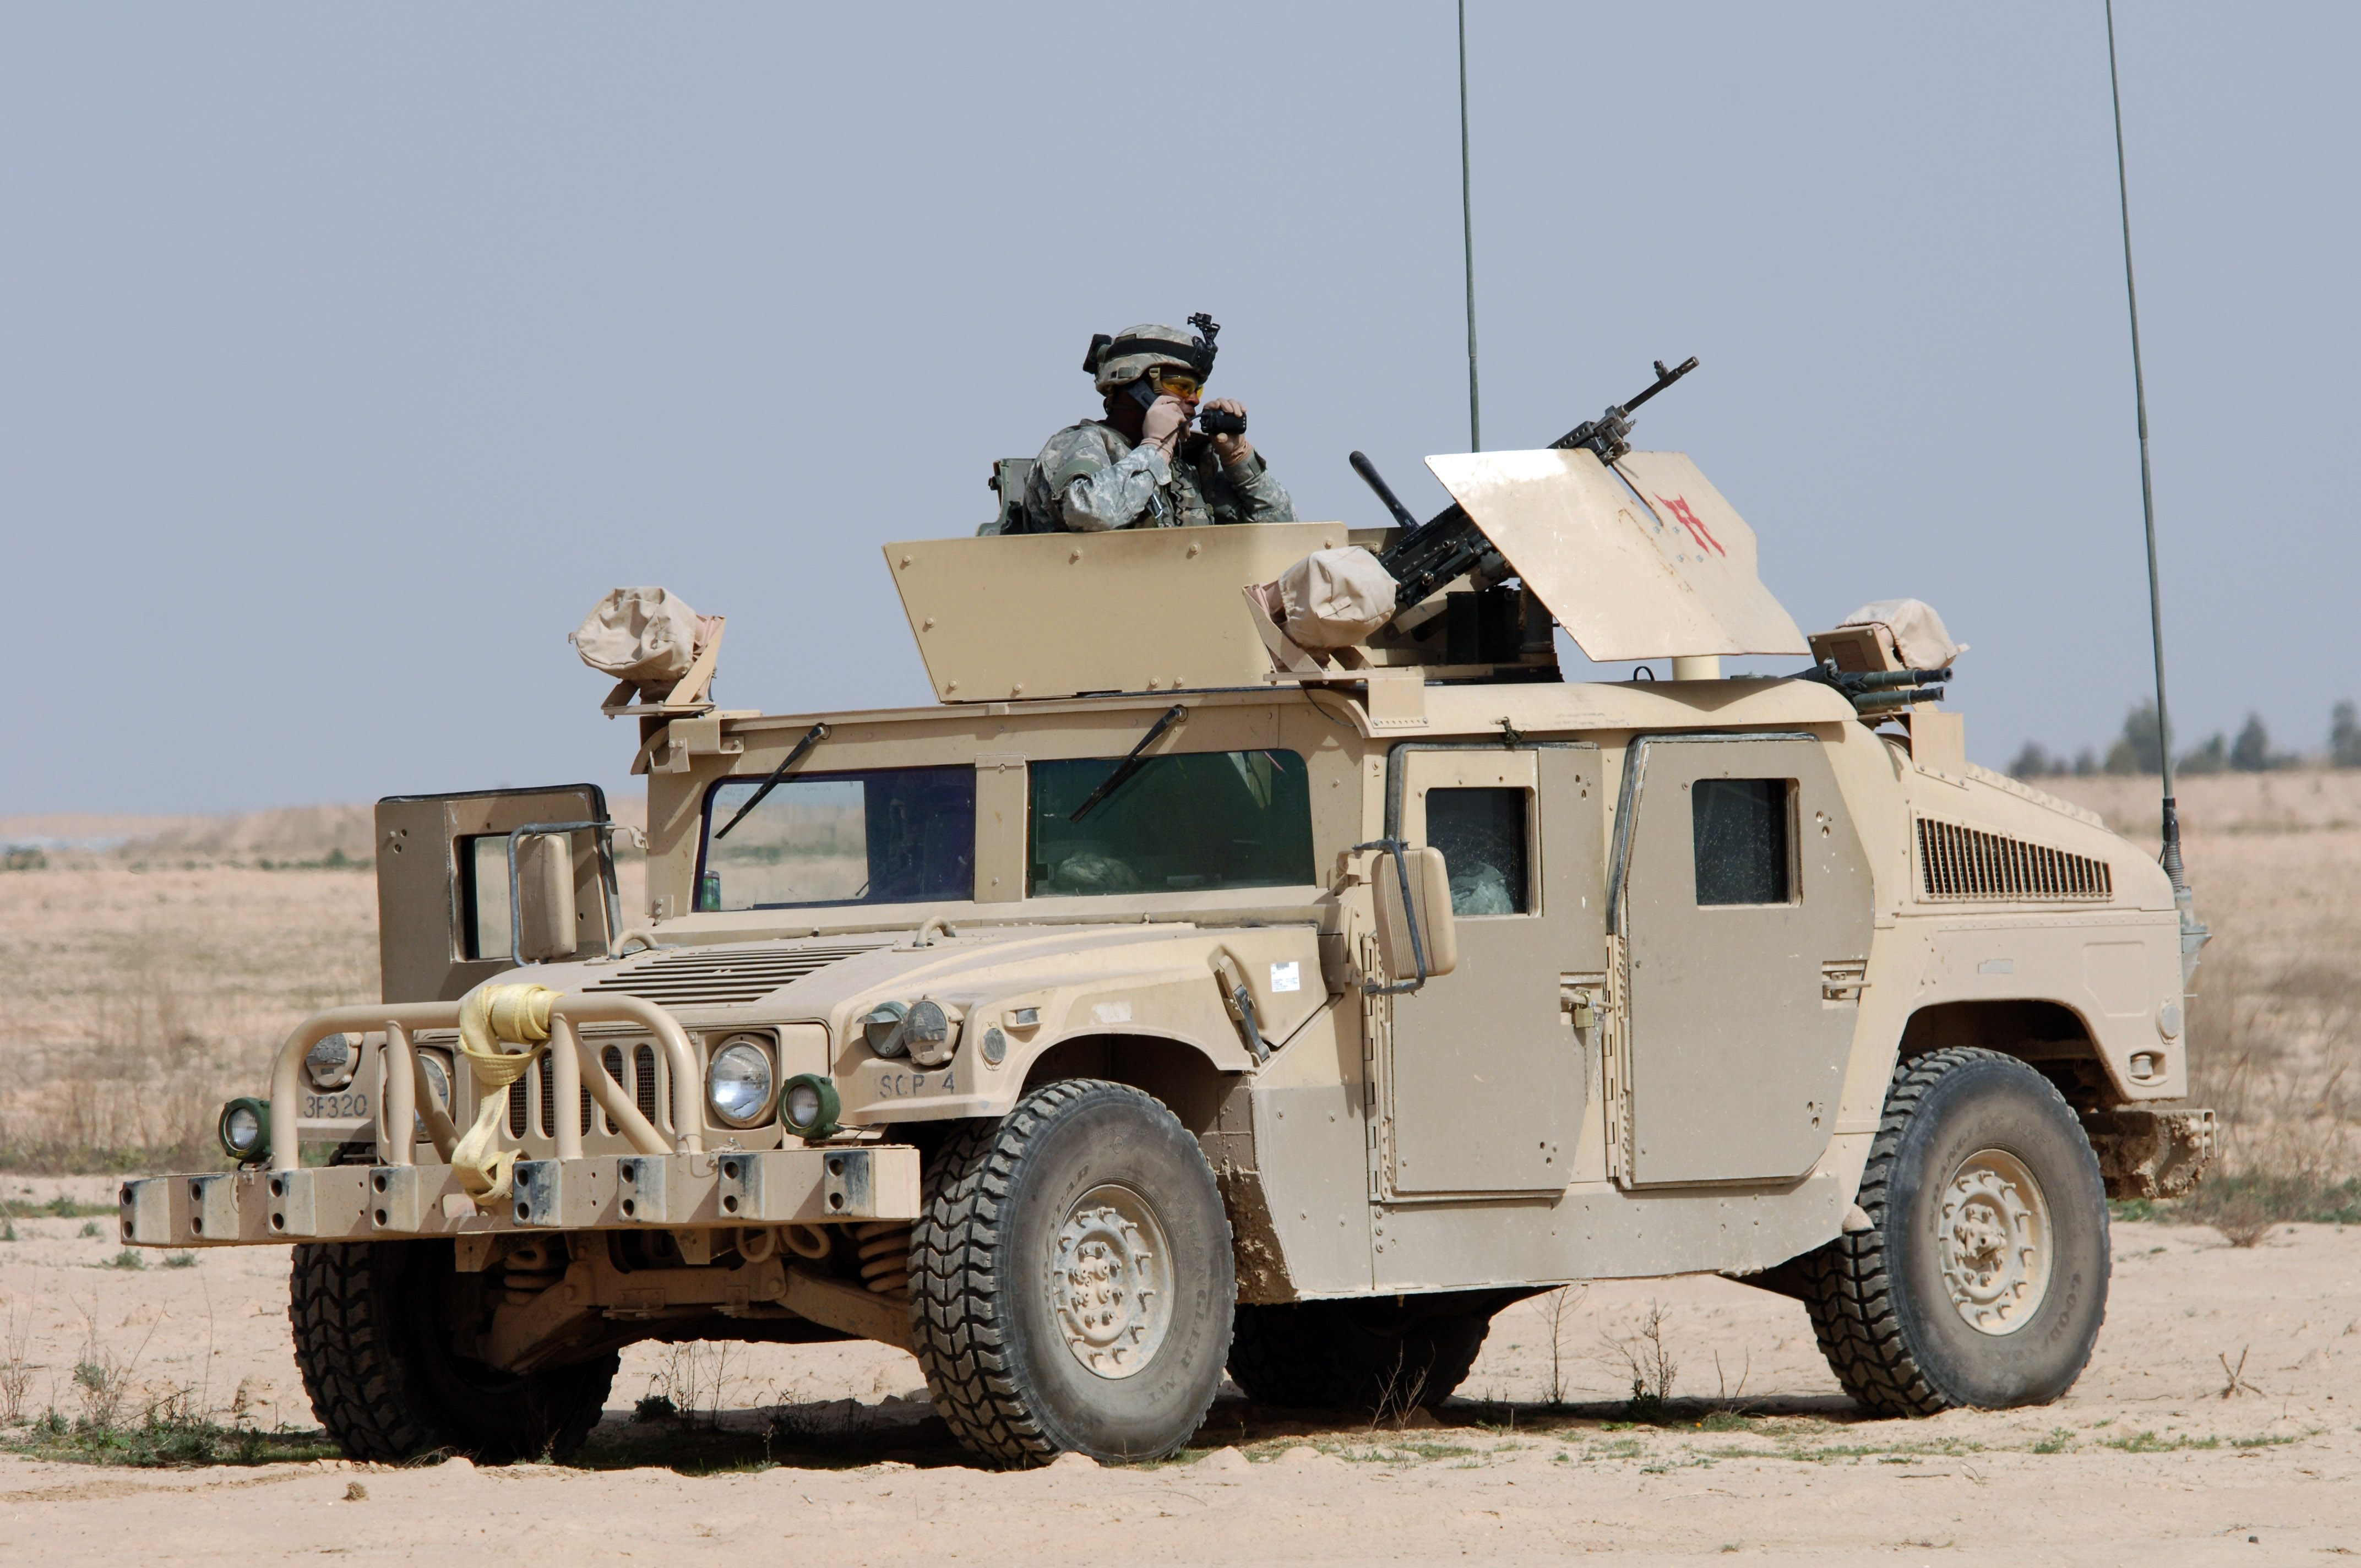 Iraqi Freedom IV Capt. Matthew Miesner, matthew.j.miesner@us.army.mil VOIP: 318-672-9605, S-5 3-3320th